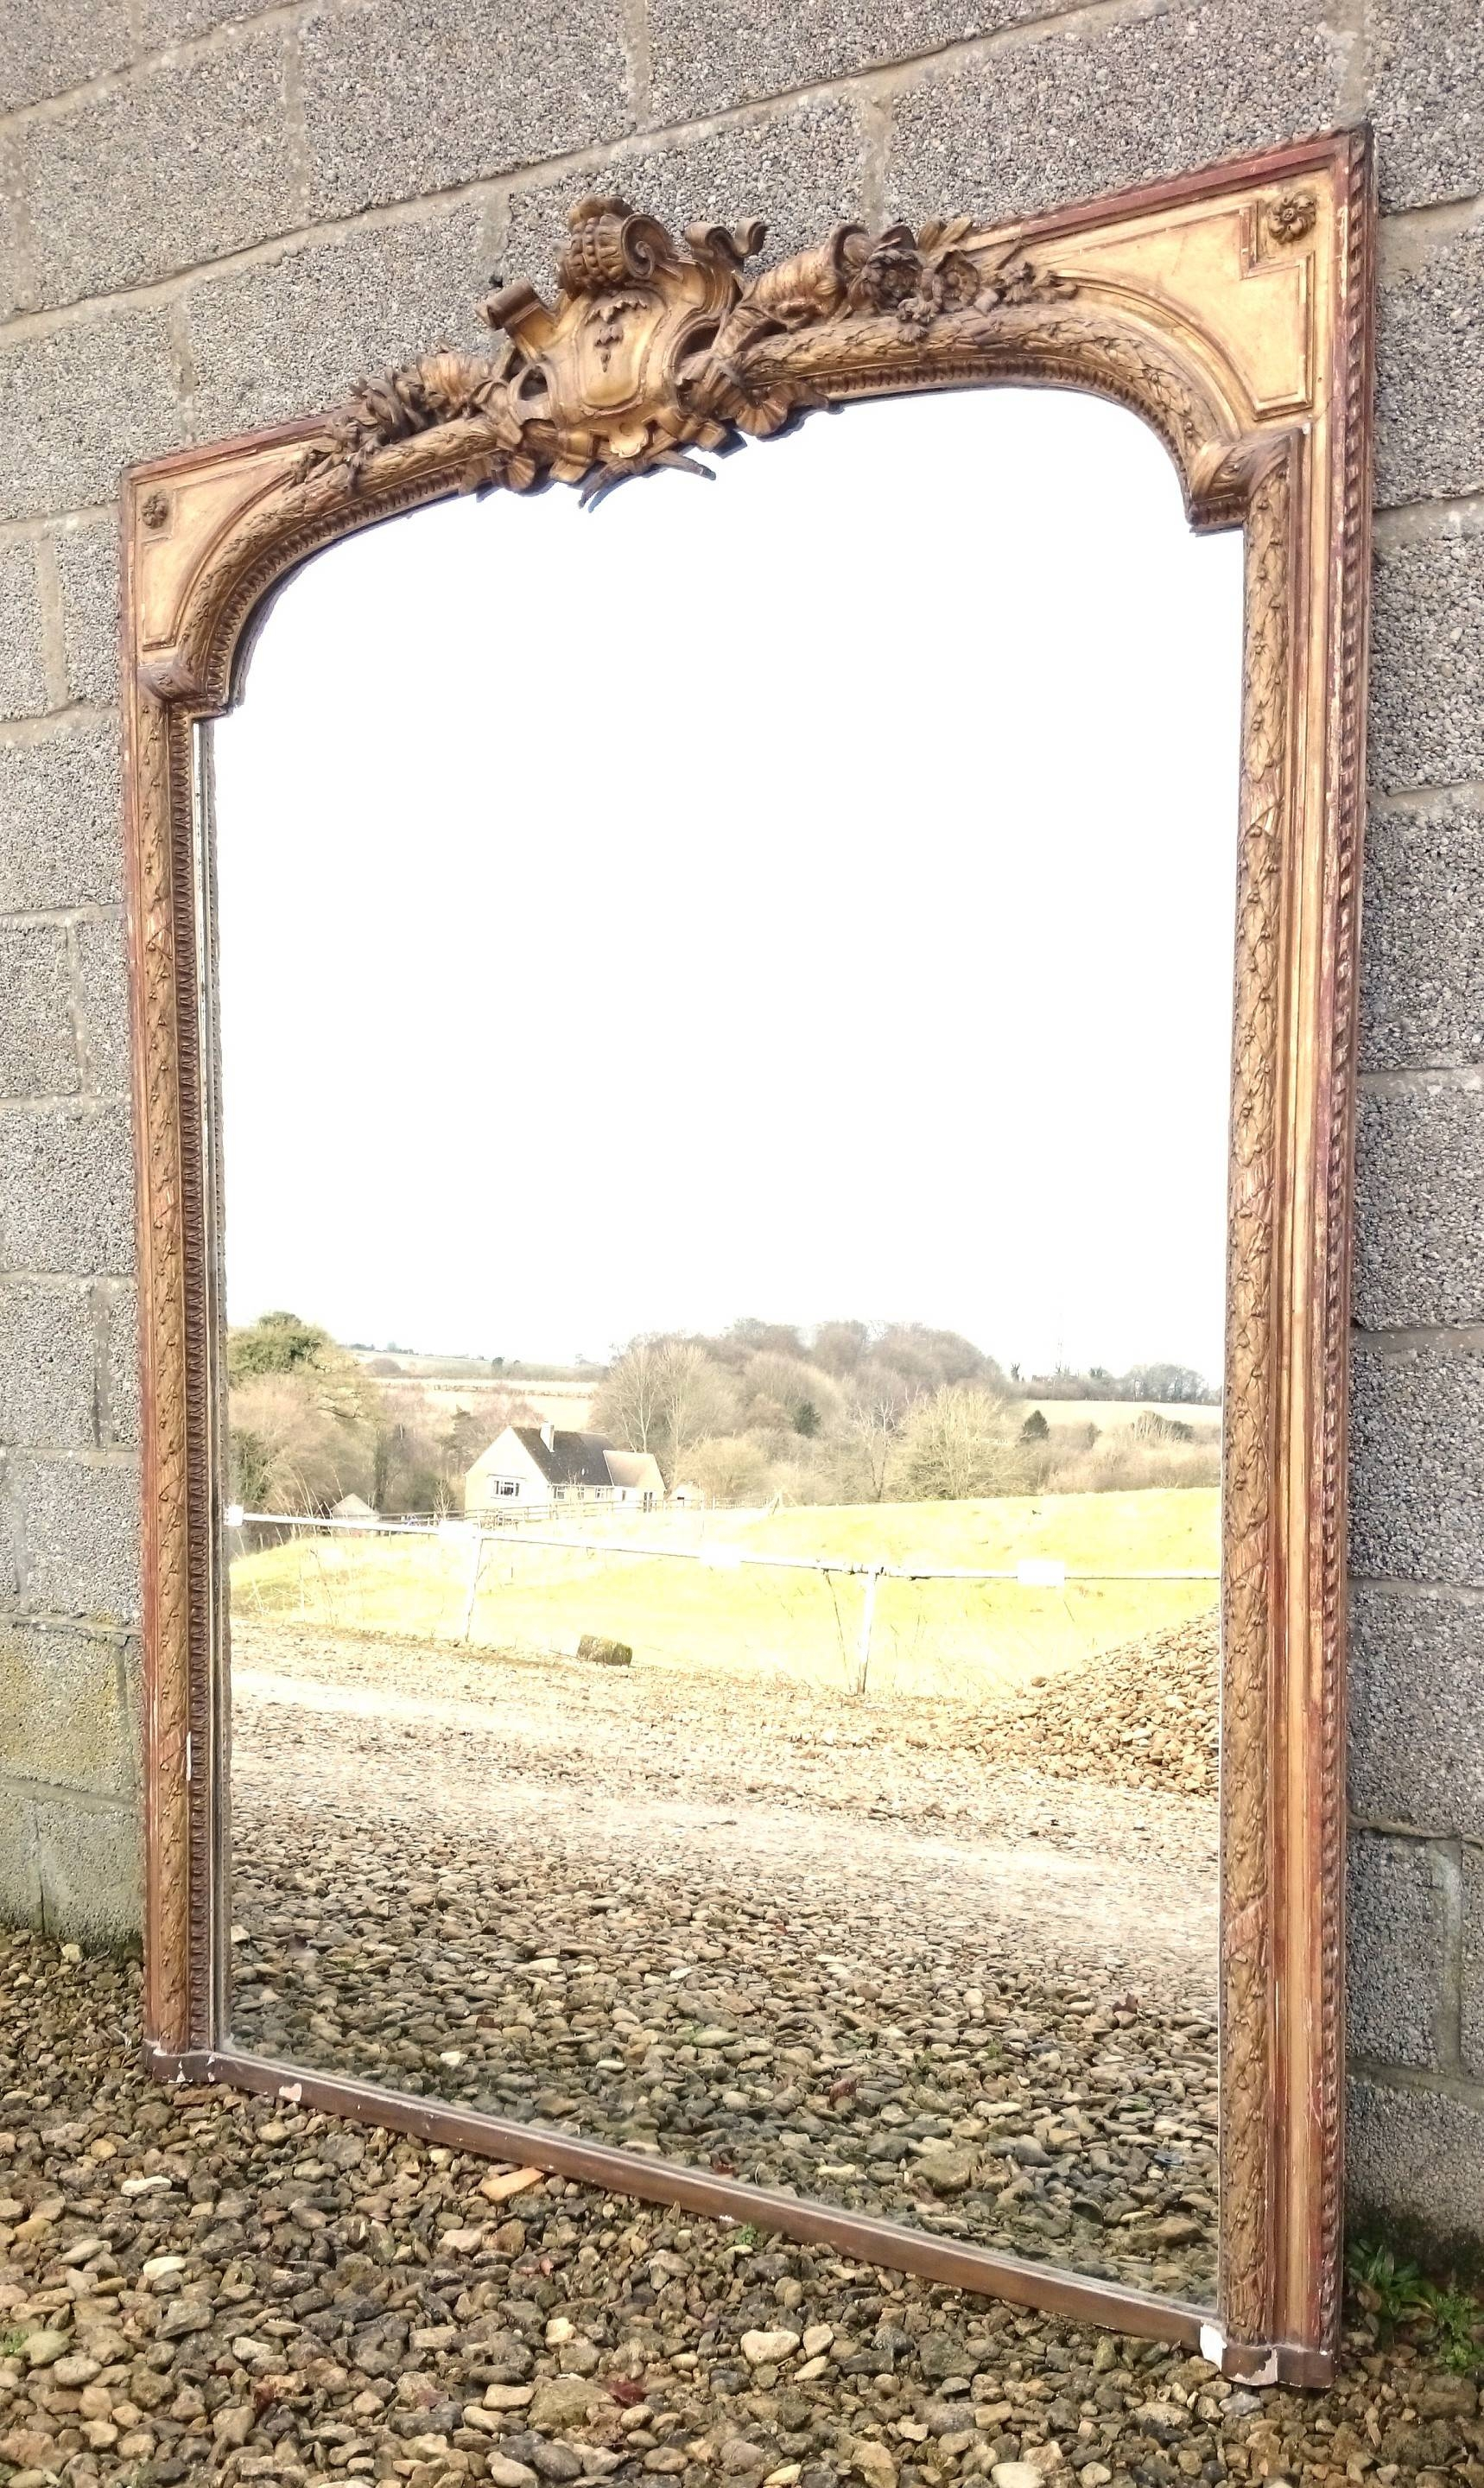 Large Antique Overmantle Mirror (C. 1850 United Kingdom) From intended for Vintage Overmantle Mirrors (Image 13 of 25)